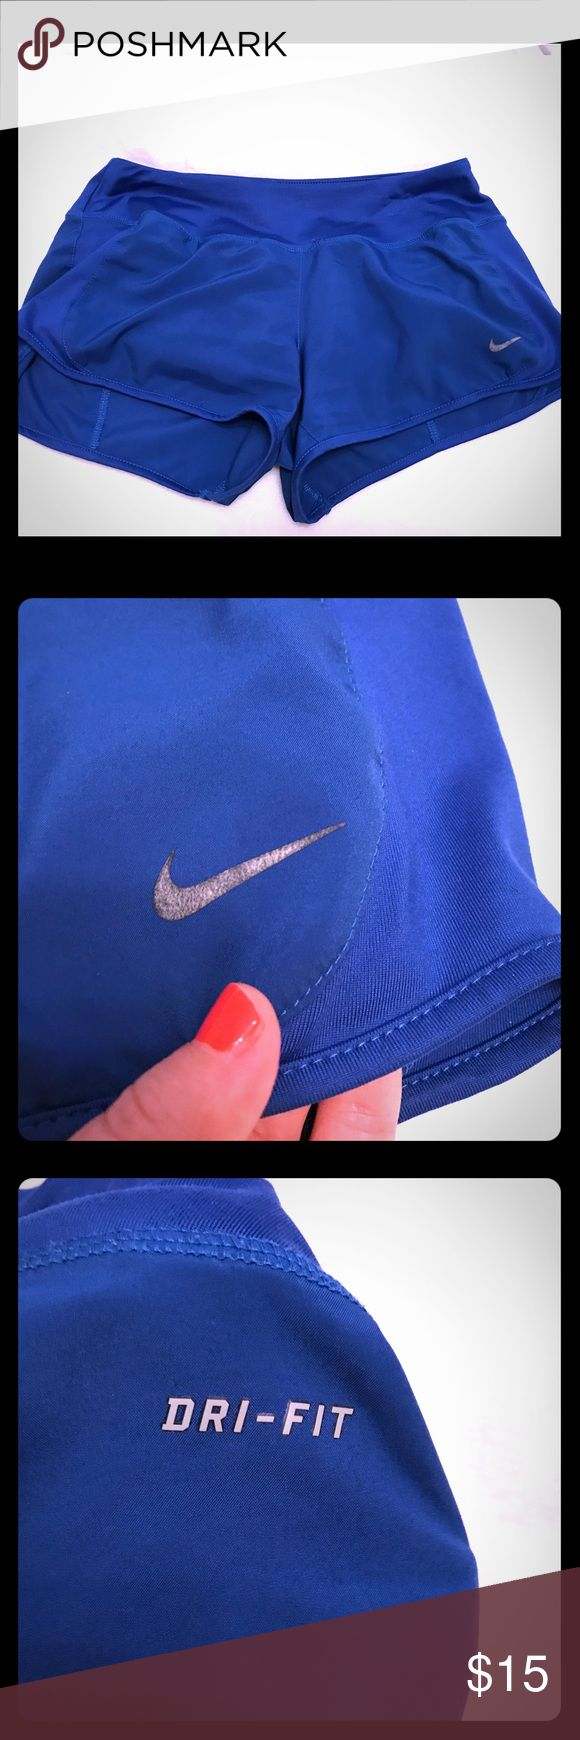 Nike Dri Fit Shorts Gently used Nike Dry Fit shorts in size small. These are in a cobalt blue color. They have a panty liner and are great for running. Has a small pocket detail in the back. The drawstring has been removed. Nike Shorts